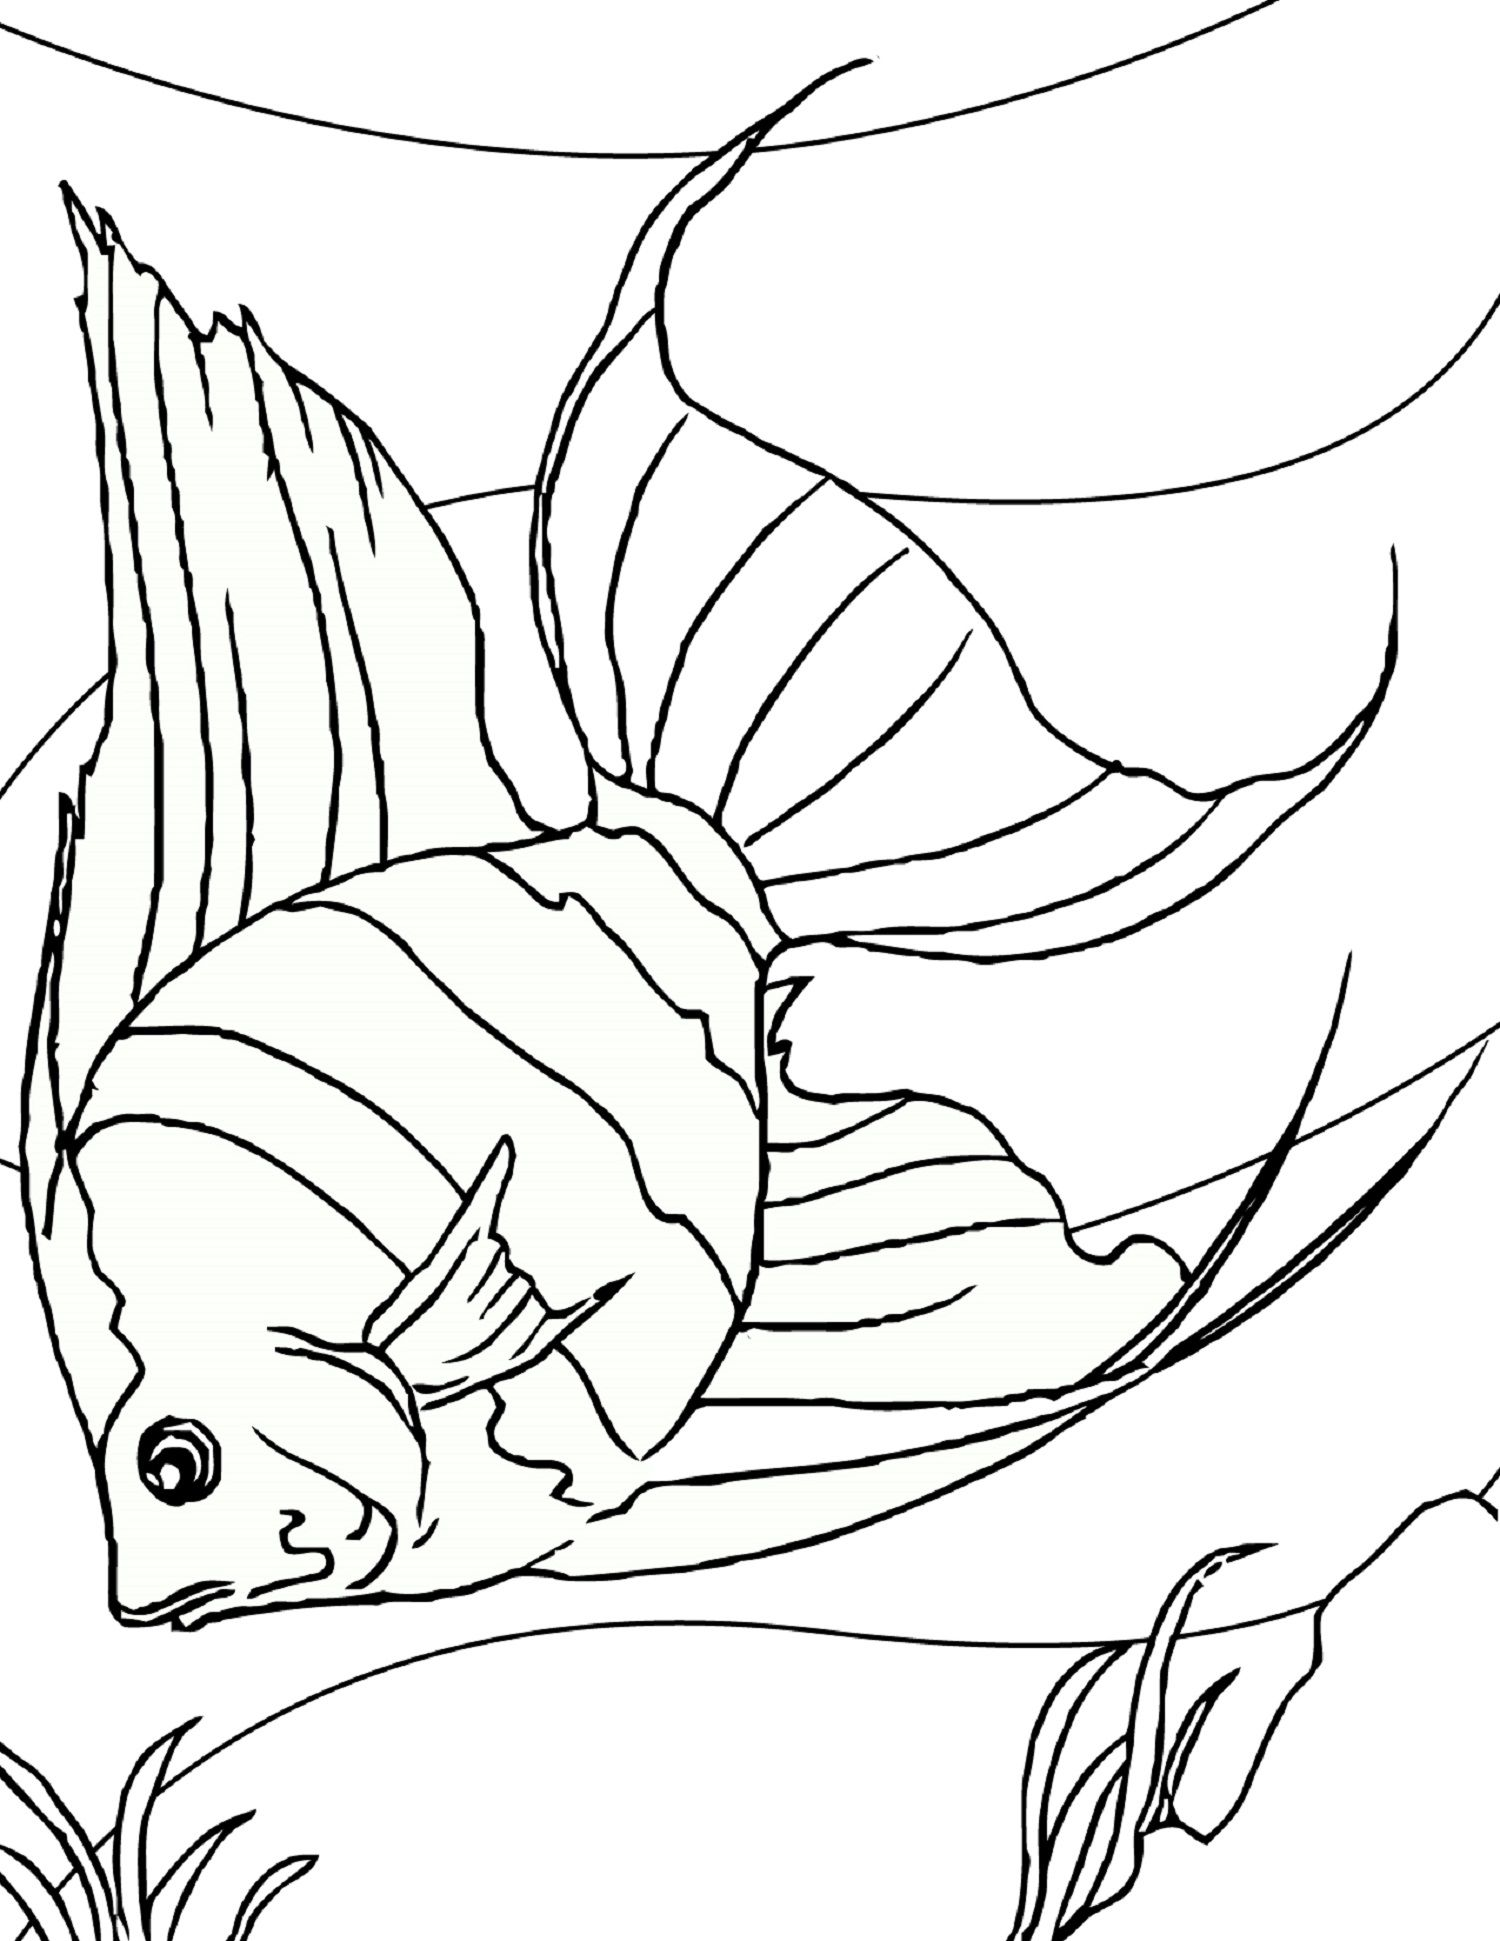 fish coloring page for aquatic pet coloring dear joya kids activity coloring pinterest. Black Bedroom Furniture Sets. Home Design Ideas